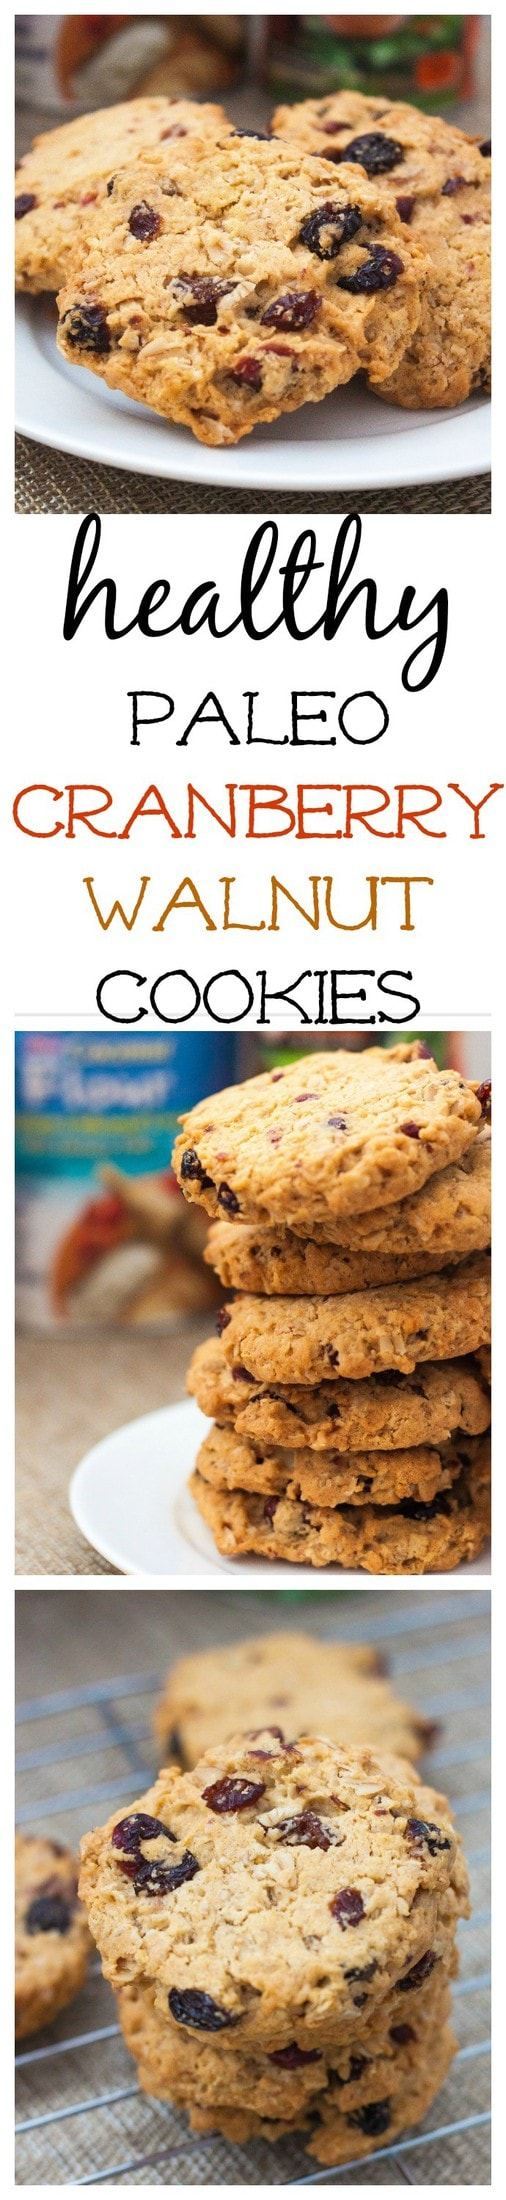 Paleo Cranberry Walnut Cookies- 20 minutes between you and these chewy, delicious cookies which are paleo and grain free! @thebigmansworld - thebigmansworld.com